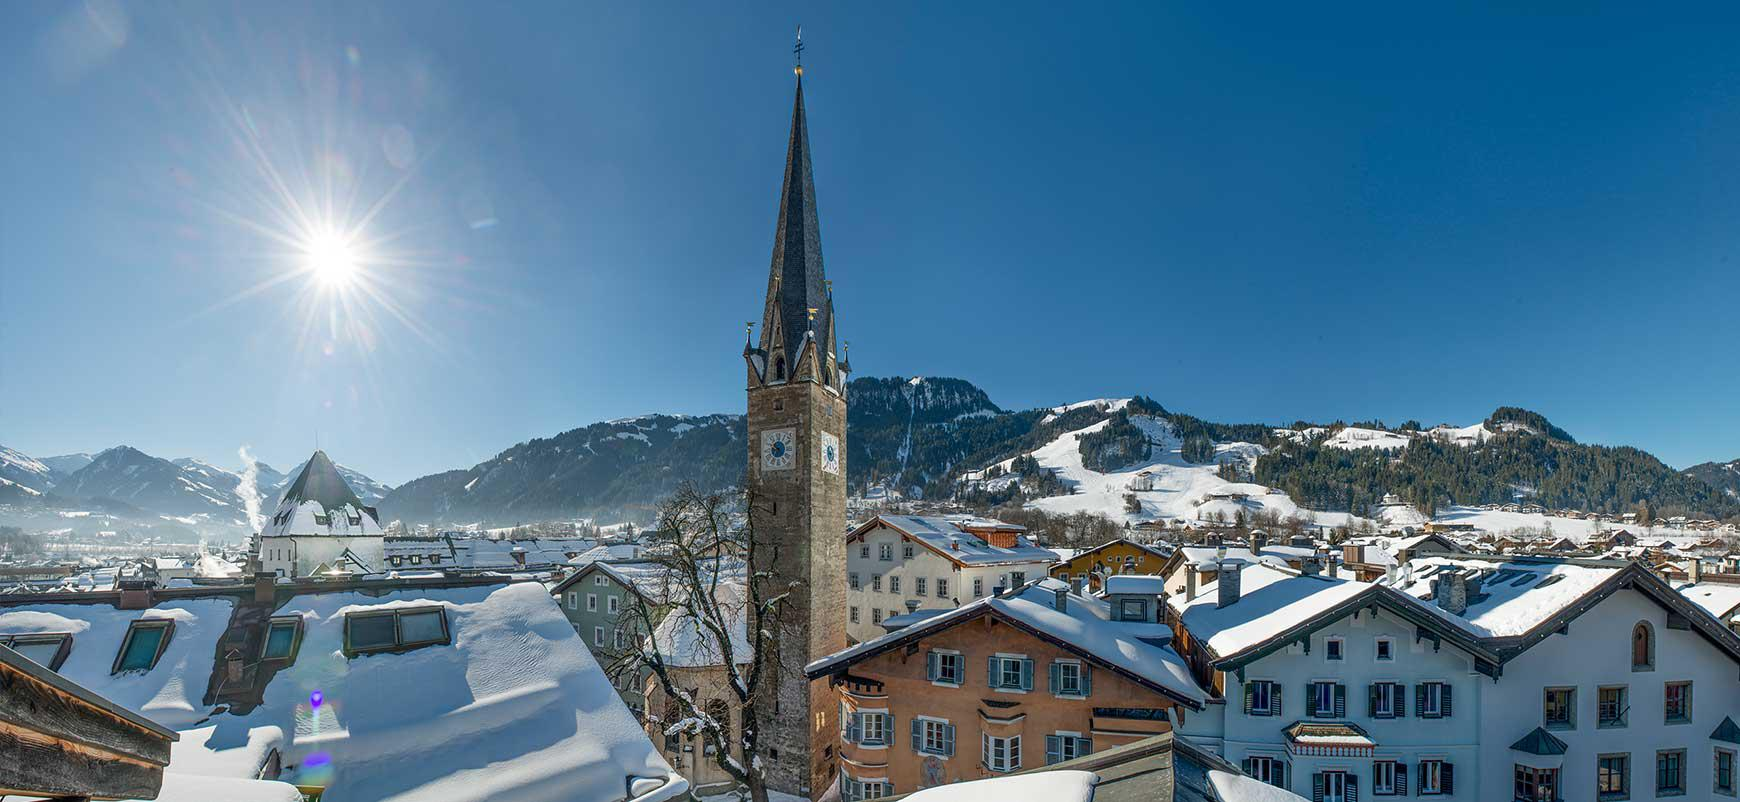 オーストリアの不動産 - Popular Hotel in finest location in Kitzbuehel